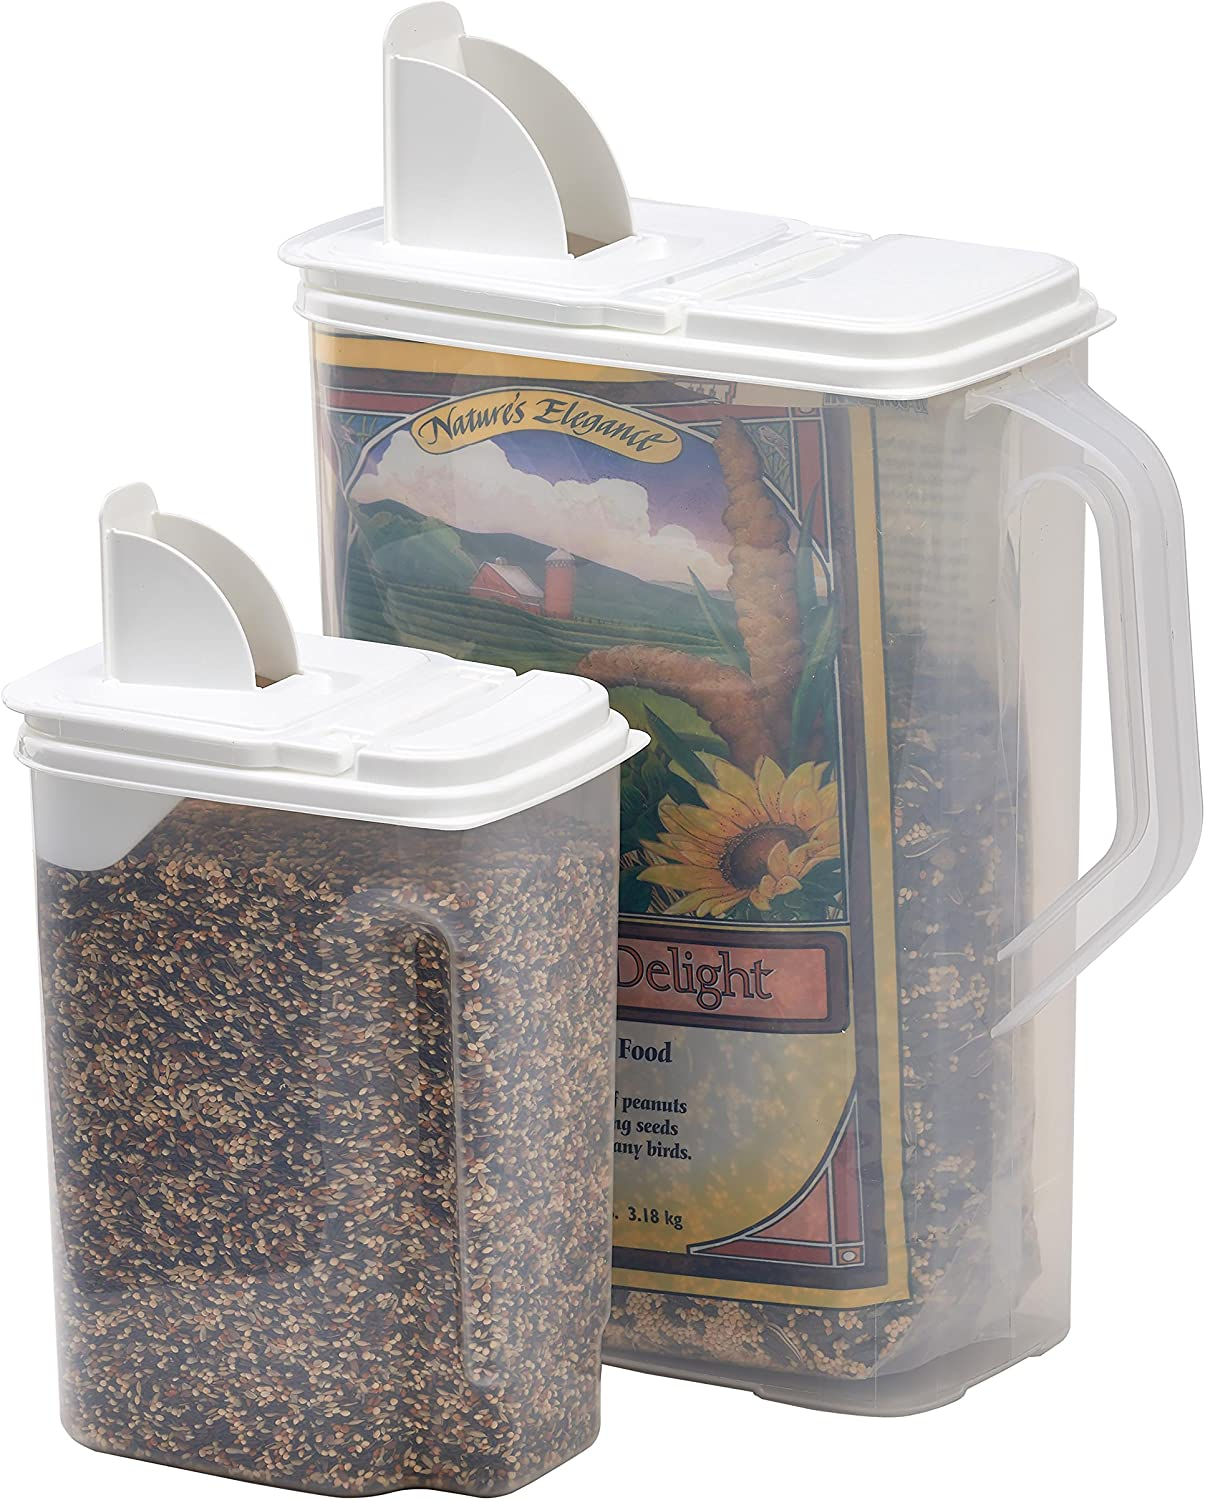 Buddeez 8 Qt and 3.5 Qt Bird Seed Dispenser Set- Set of 2 Containers with Lids